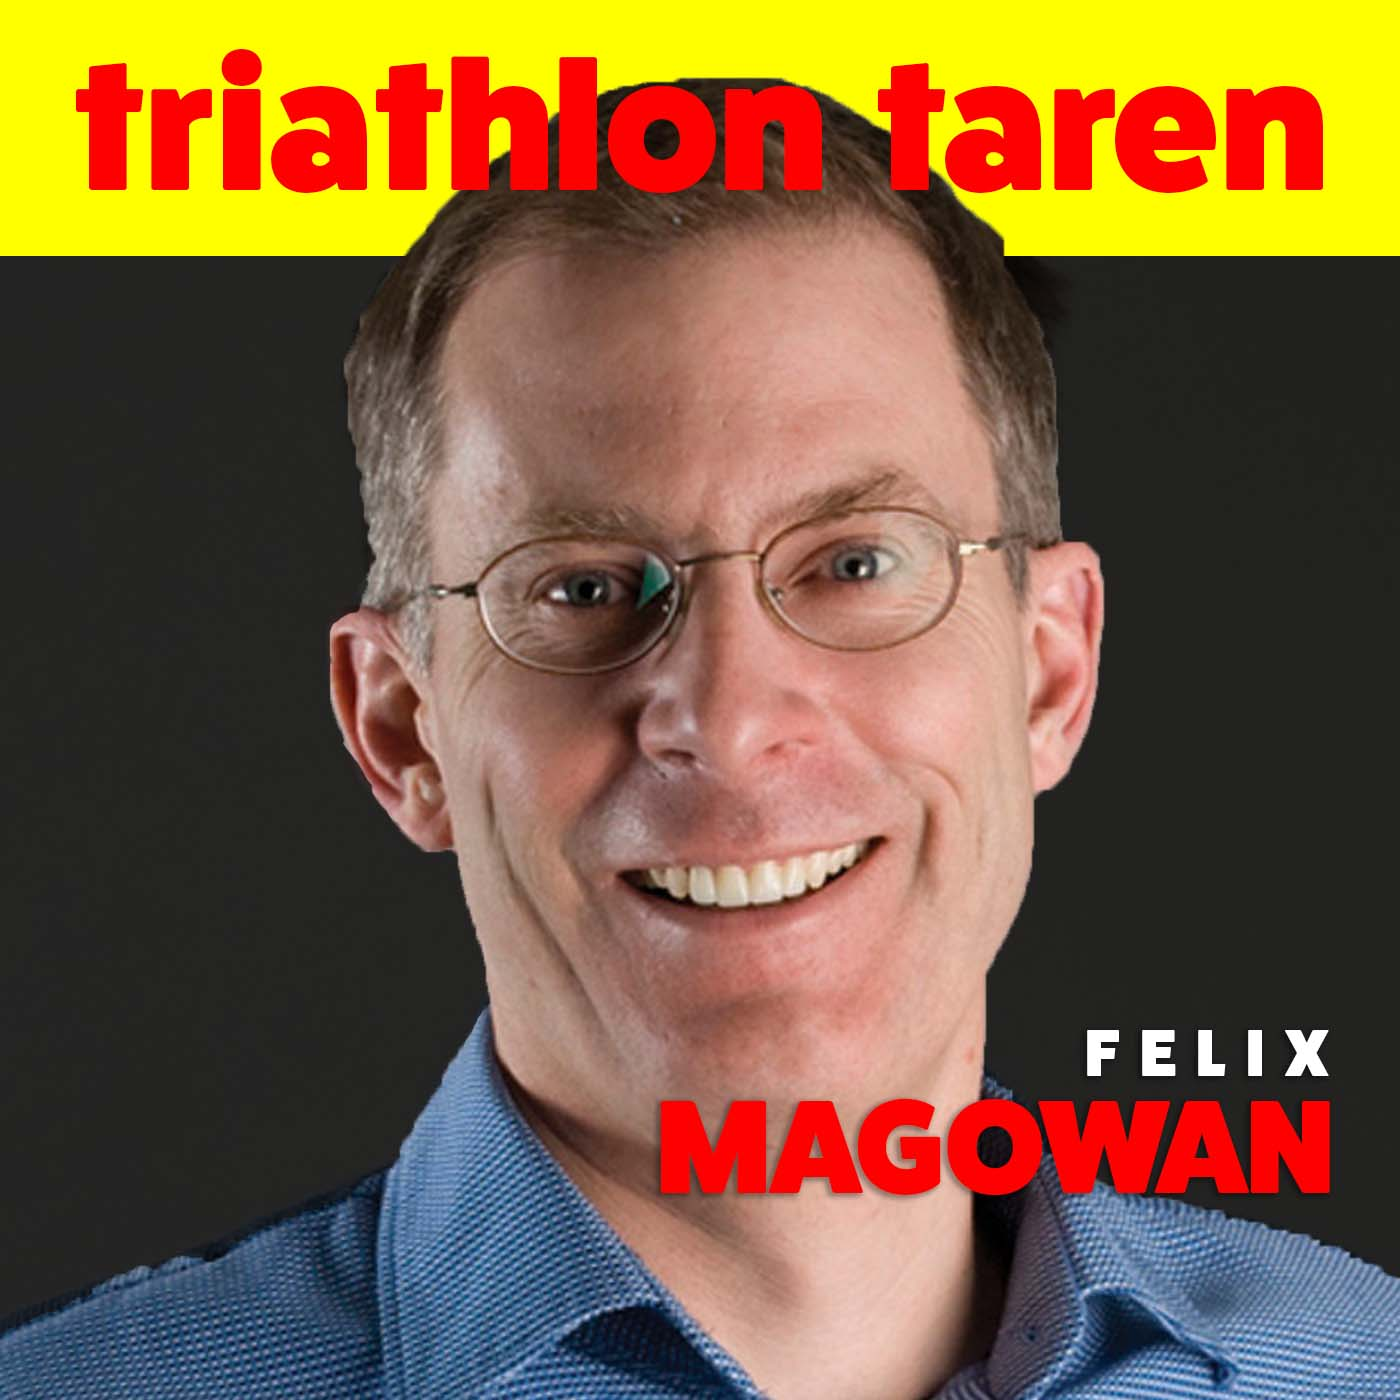 Felix Magowan: Why He Bought Triathlete Magazine from Ironman